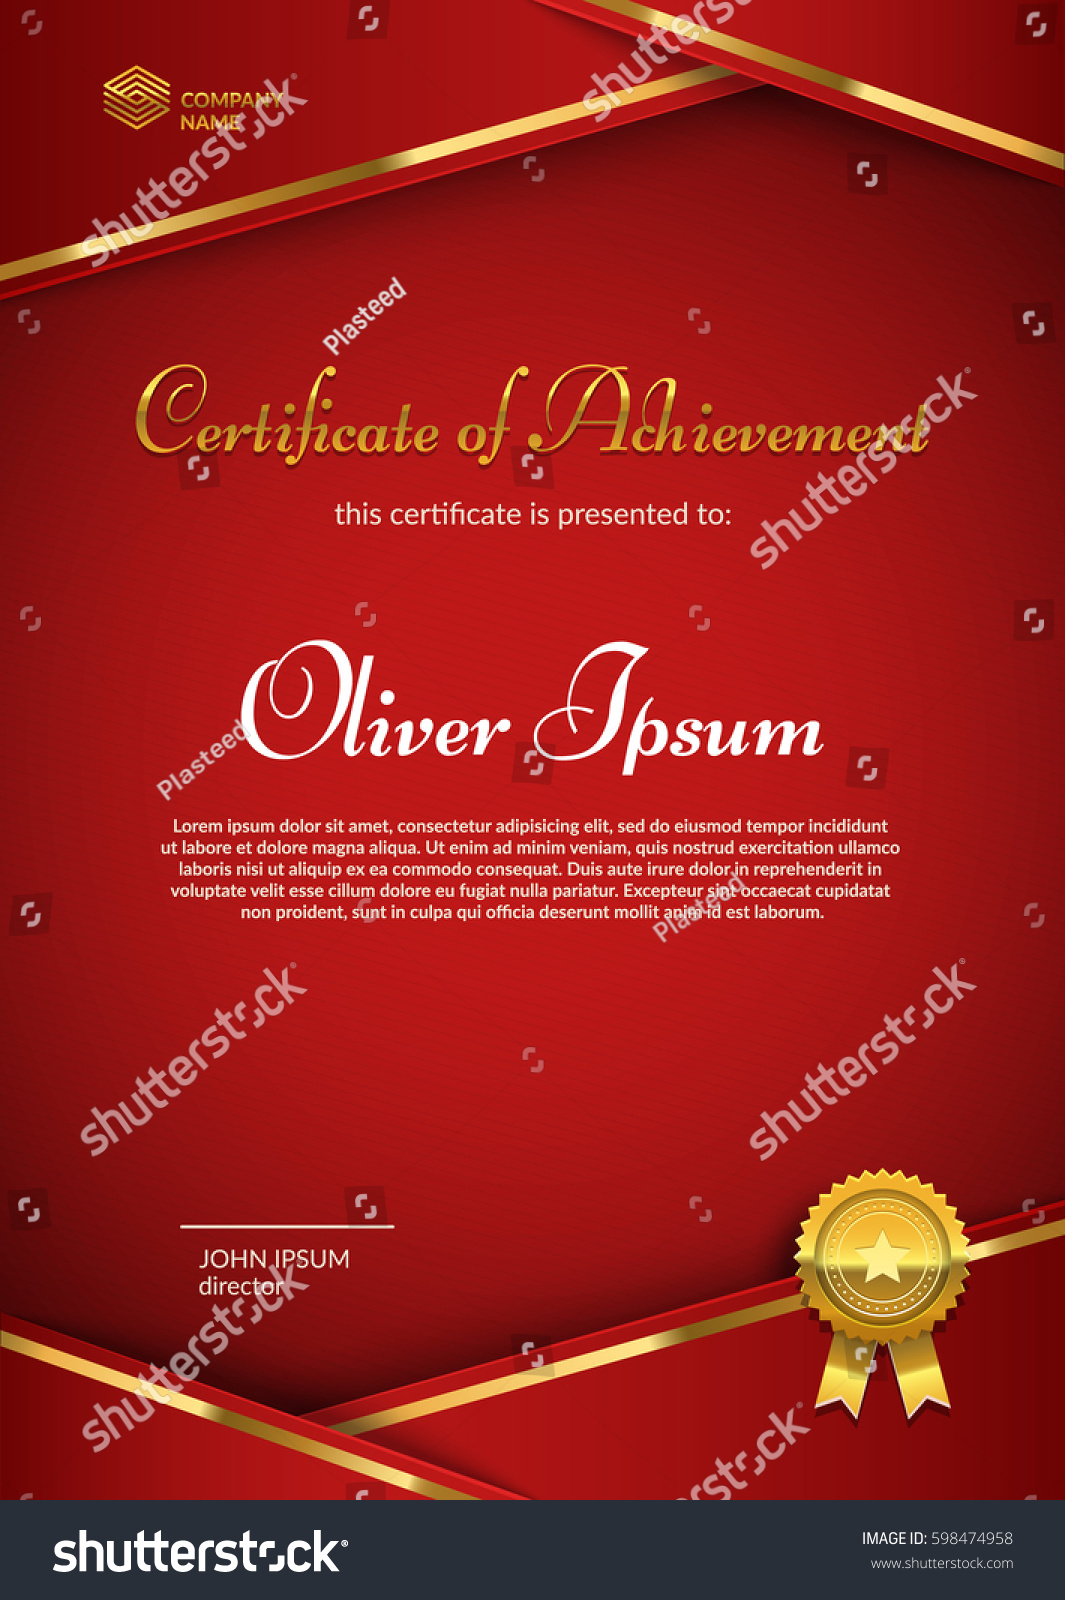 Certificate appreciation seal badge template red stock vector certificate of appreciation with seal badge template red and gold colors premium diploma design yadclub Image collections